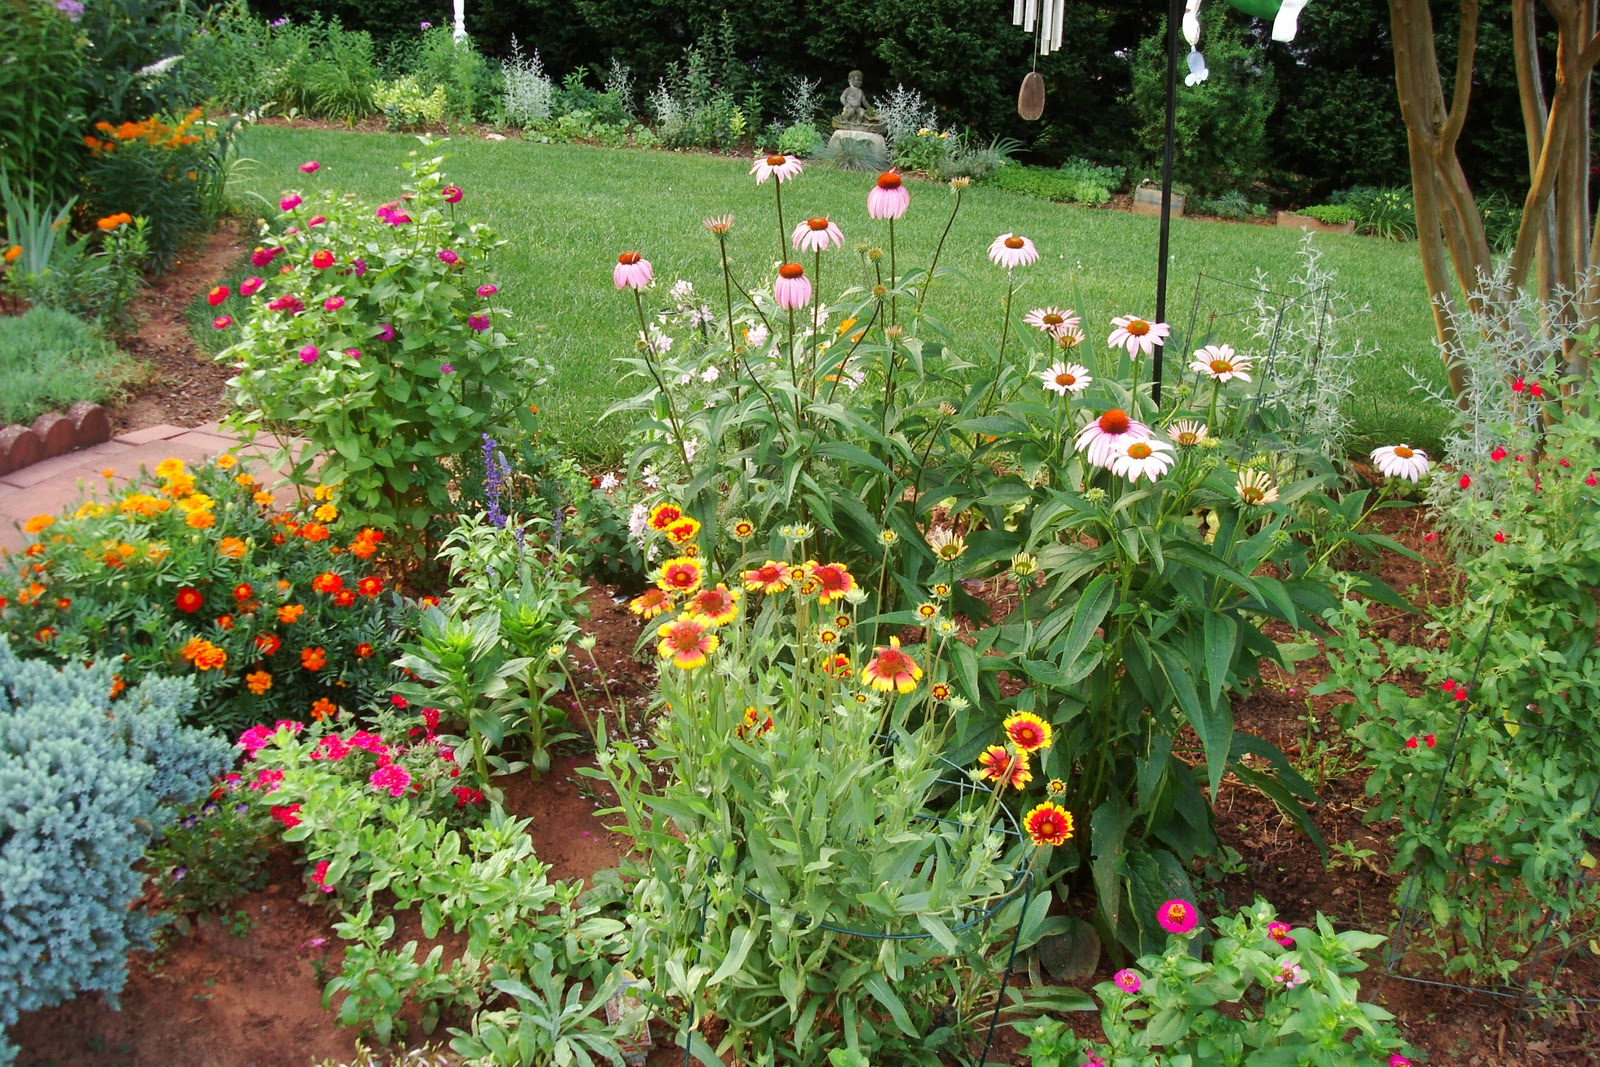 Flowers And Nature In My Garden: Flower Beds